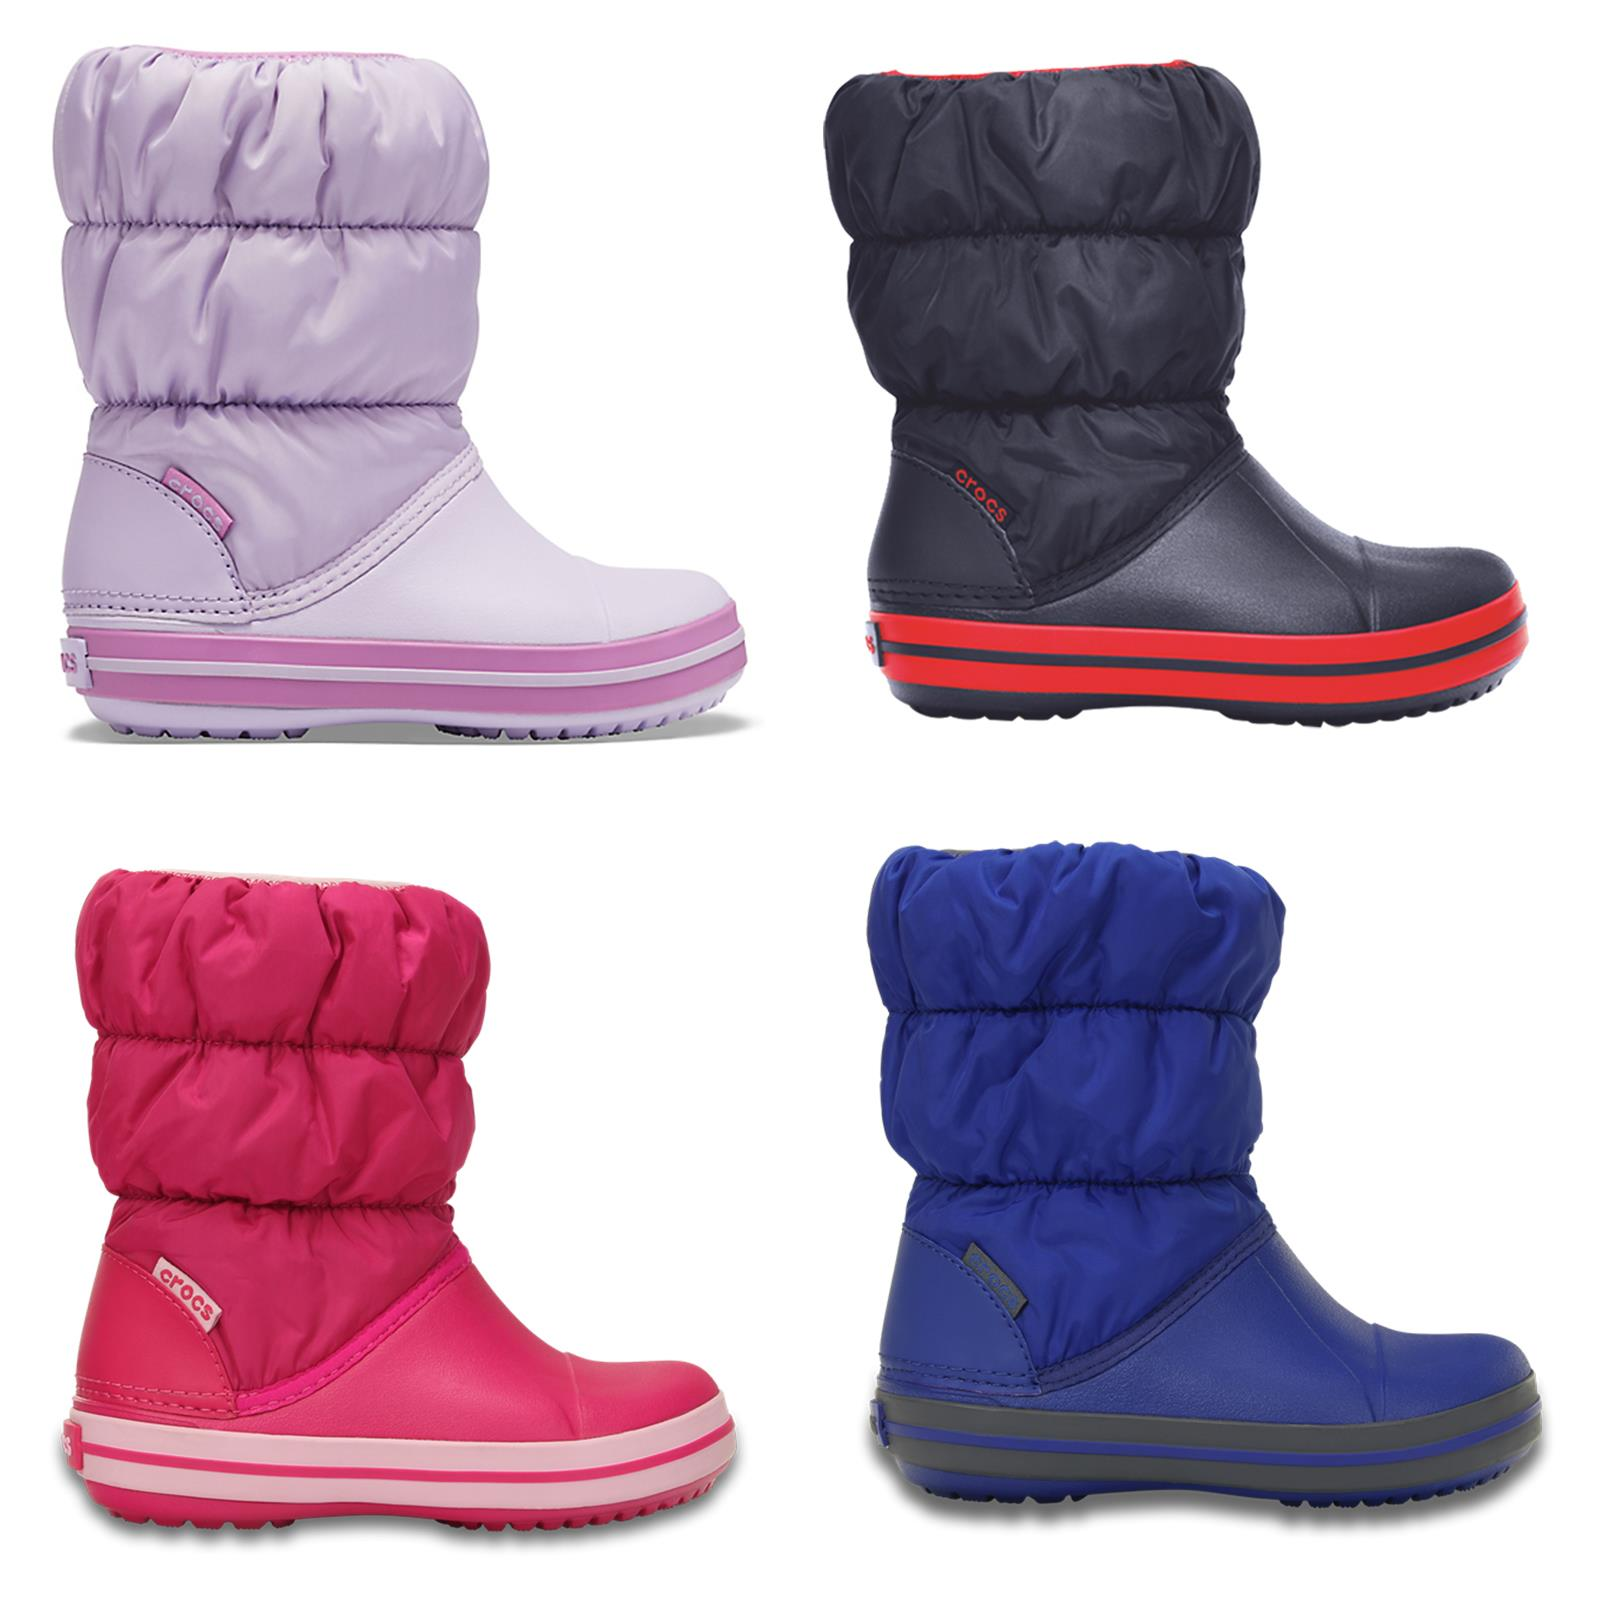 BluePink Standard Winter Crocs Fit Boots Kids title in